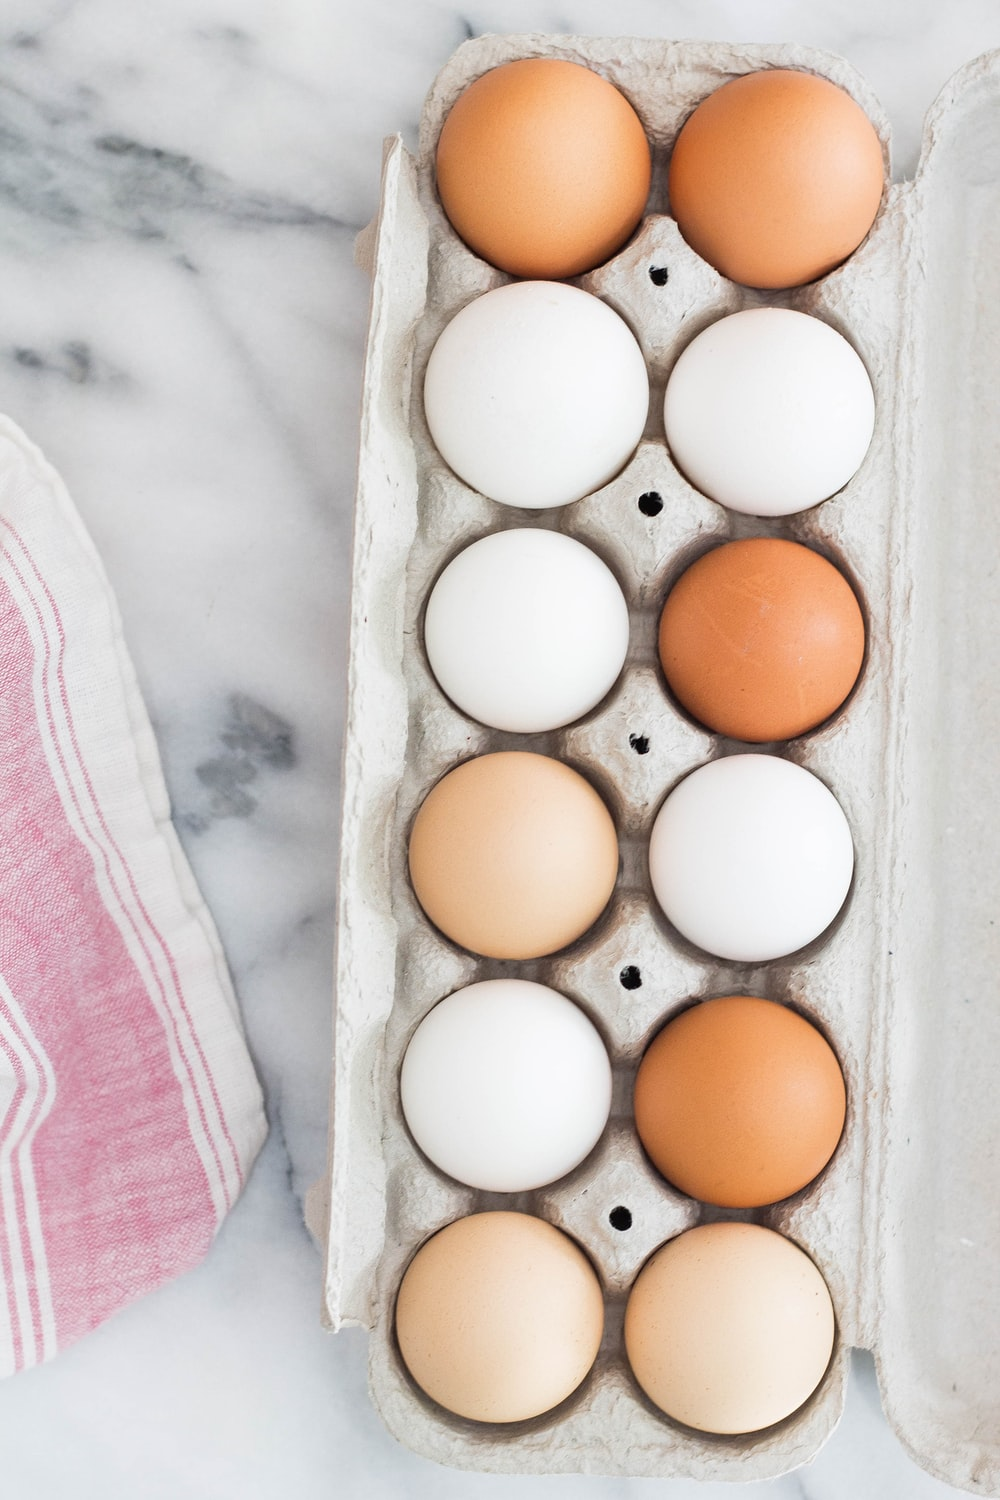 white and brown eggs in tray